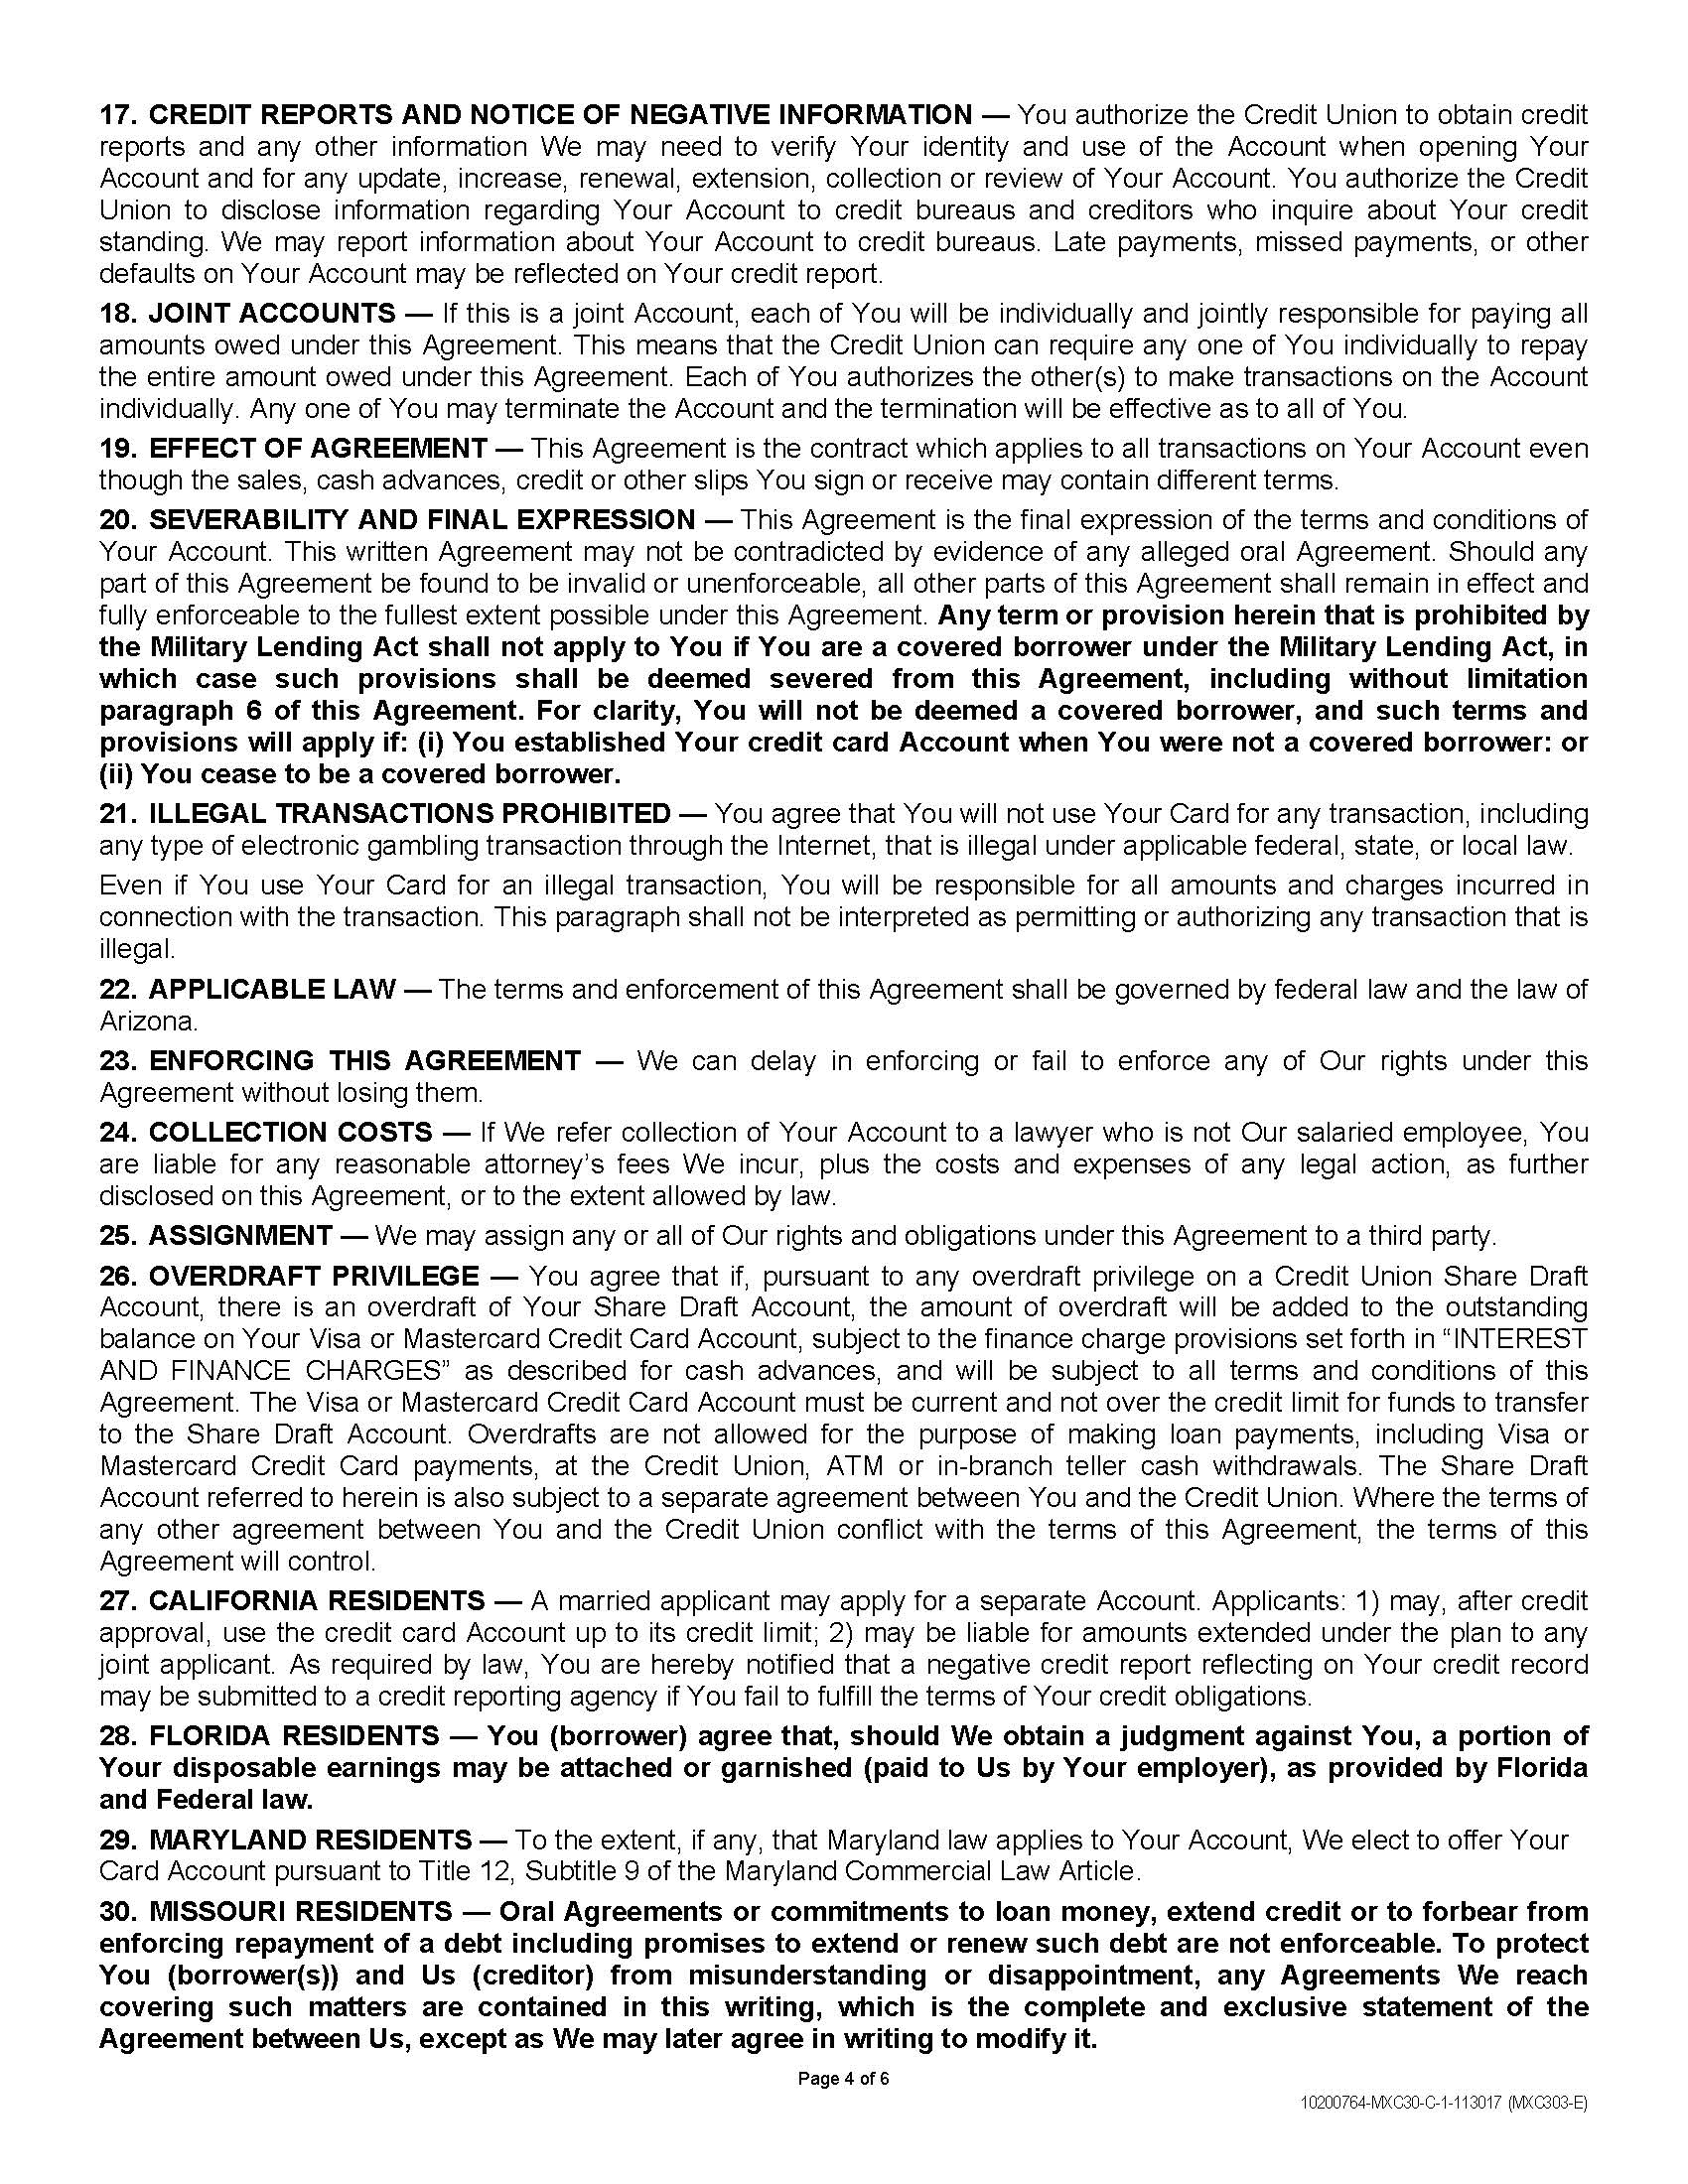 Consumer Credit Card Agreement And Disclosure Page4 Vantage West